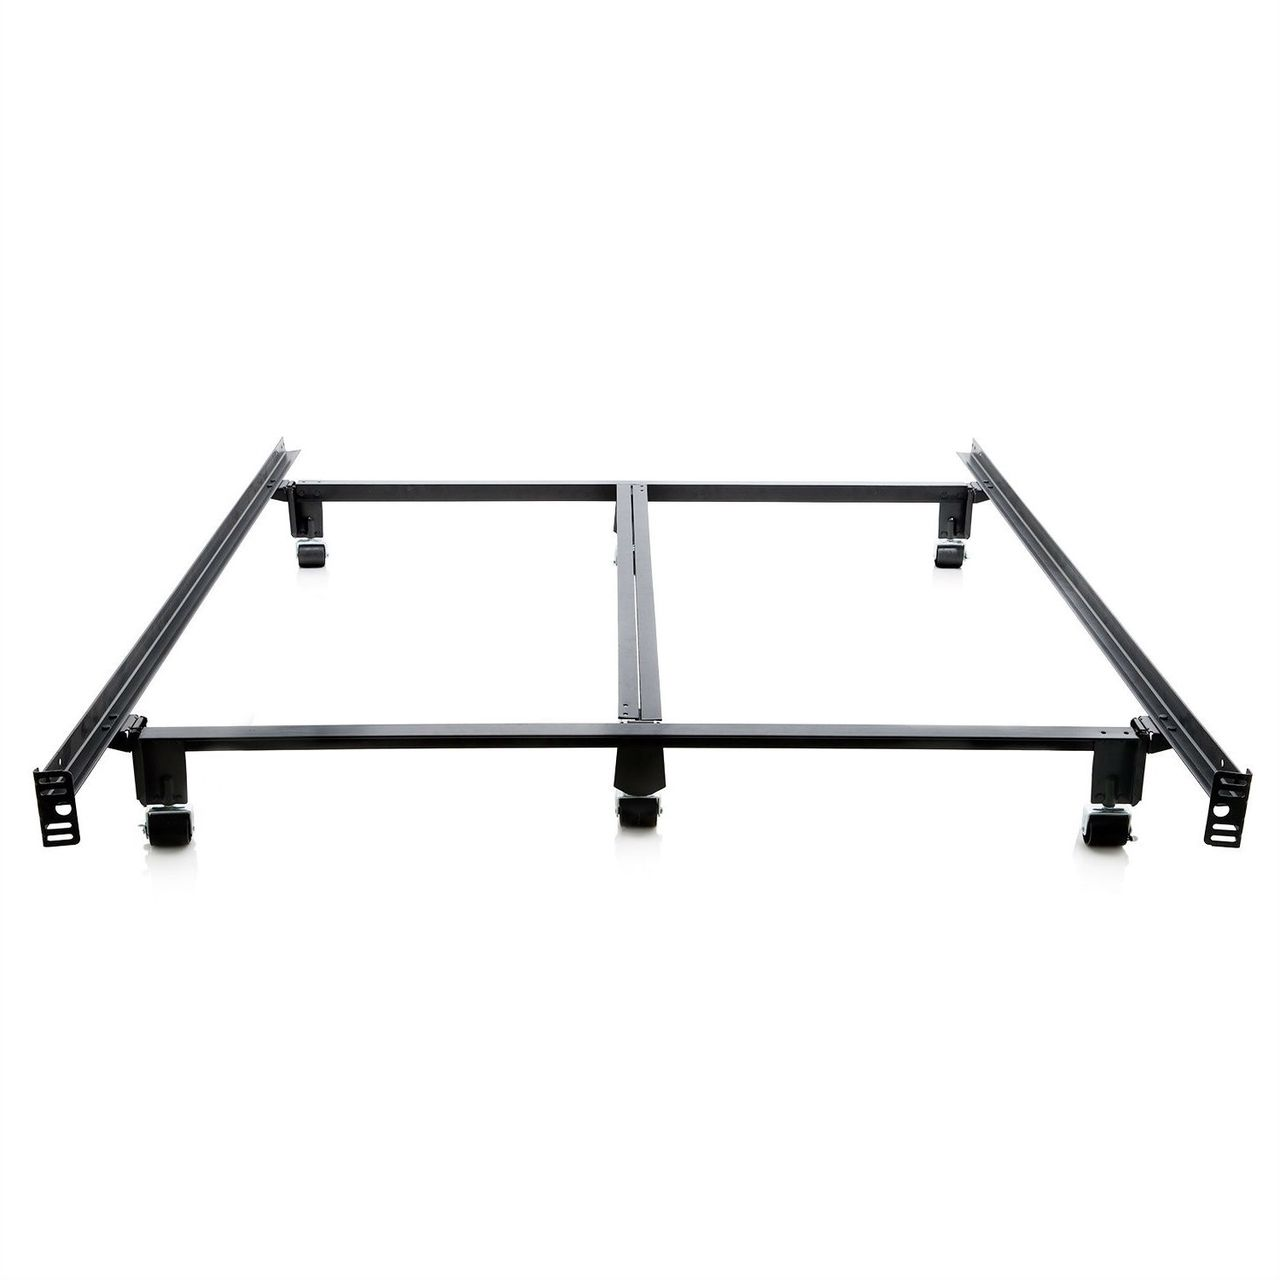 King Heavy Duty Metal Bed Frame With Locking Rug Roller Casters